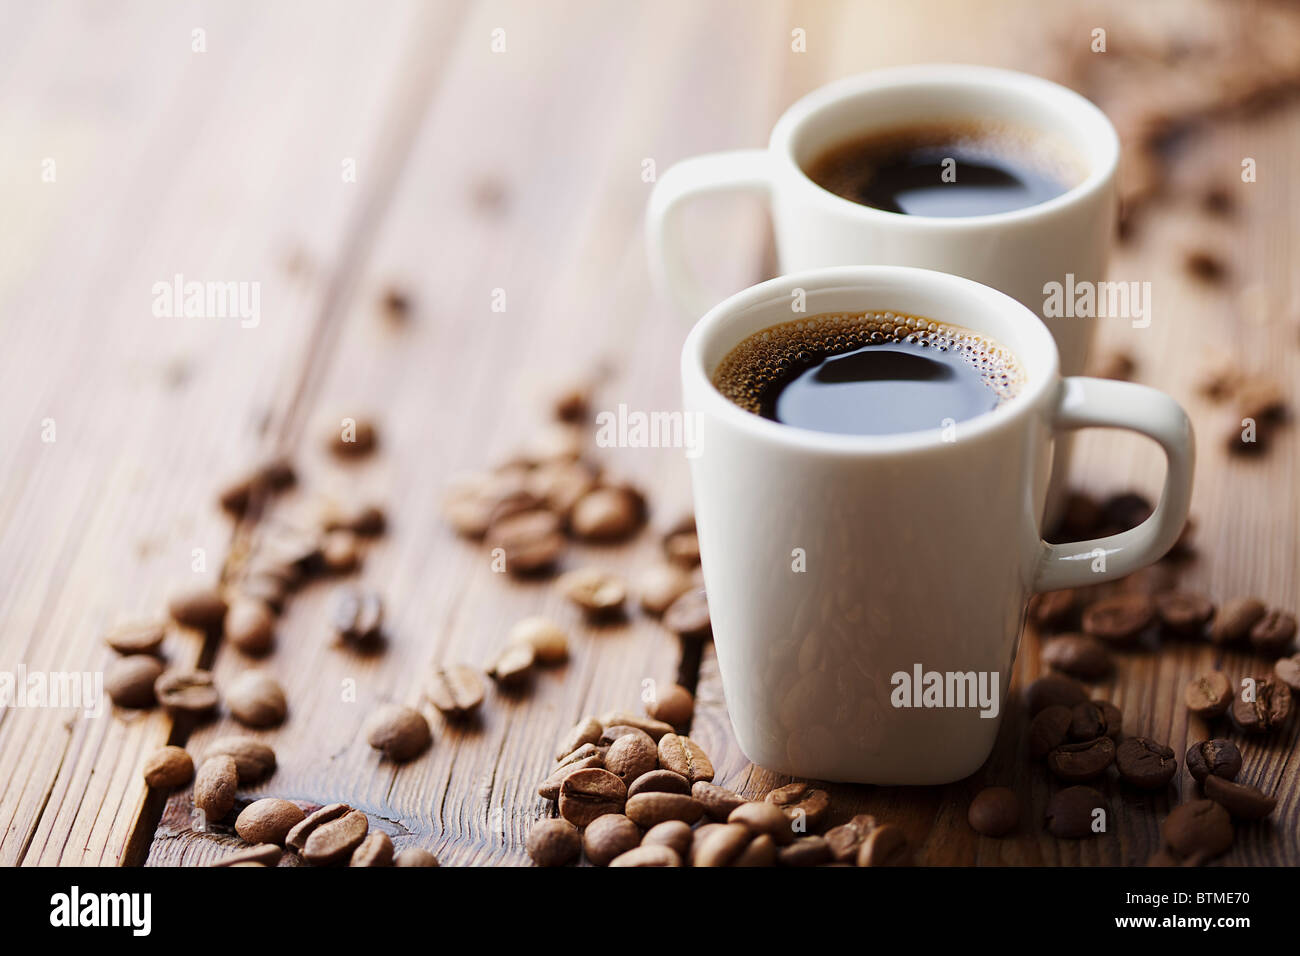 two modern espresso cups on a wooden table - Stock Image